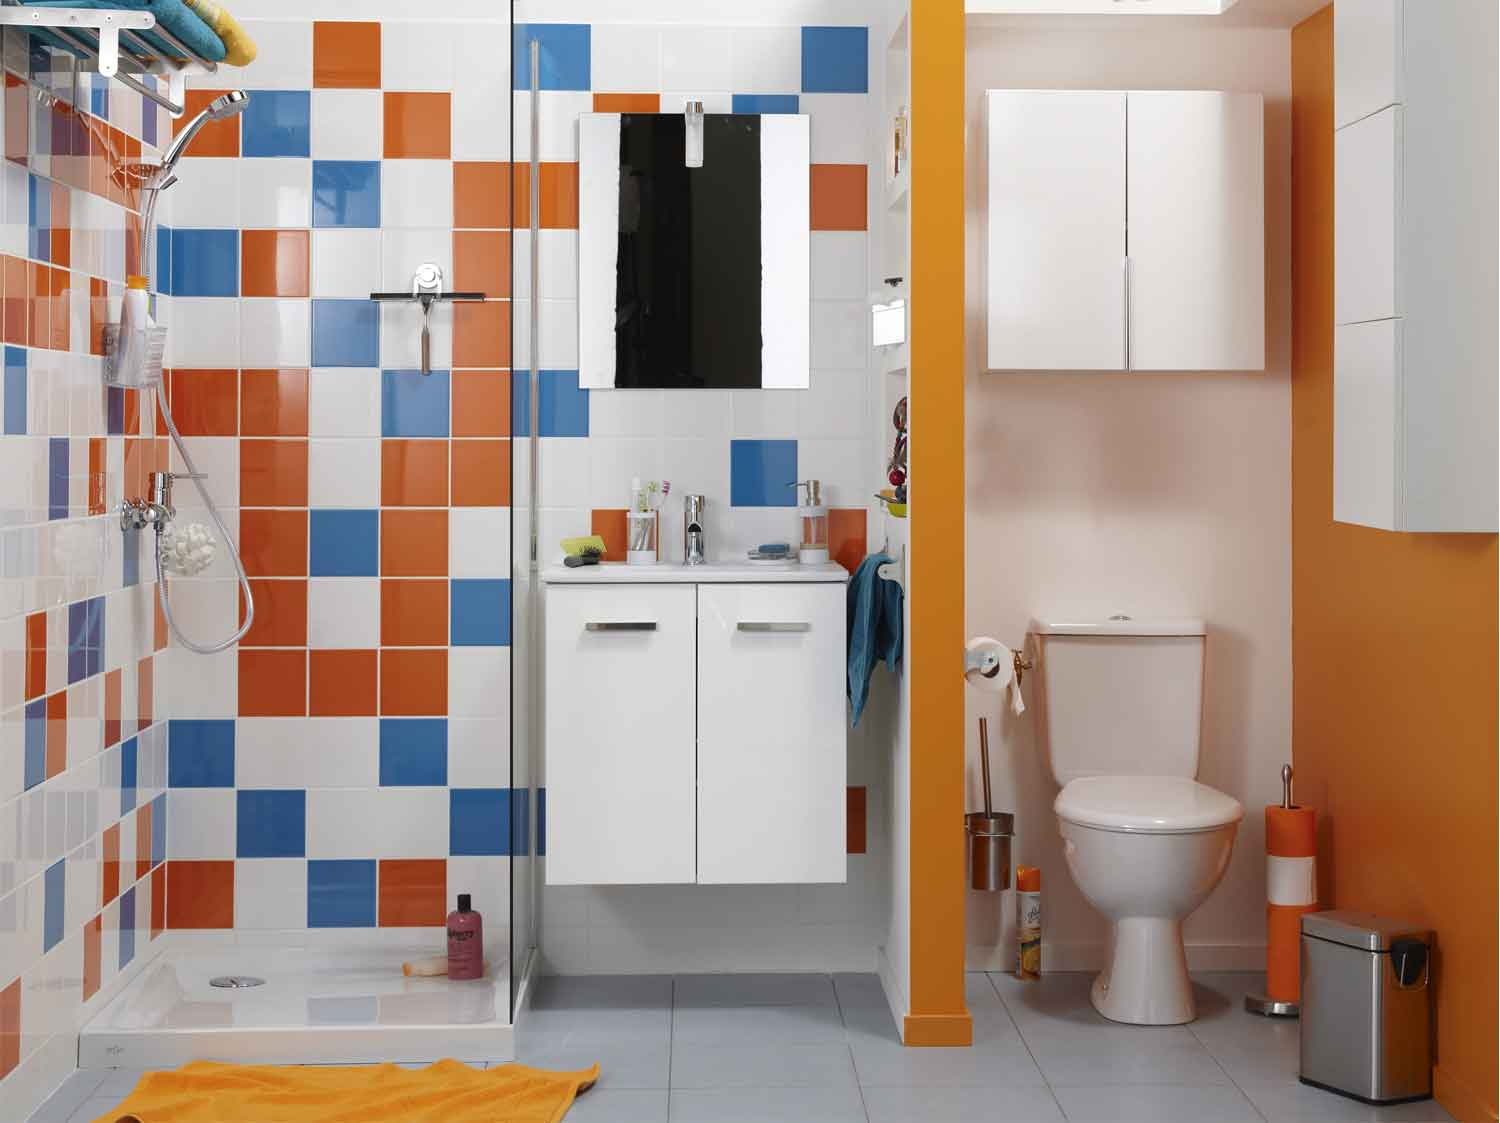 Deco wc leroy merlin for Amenager une salle de bain de 9m2